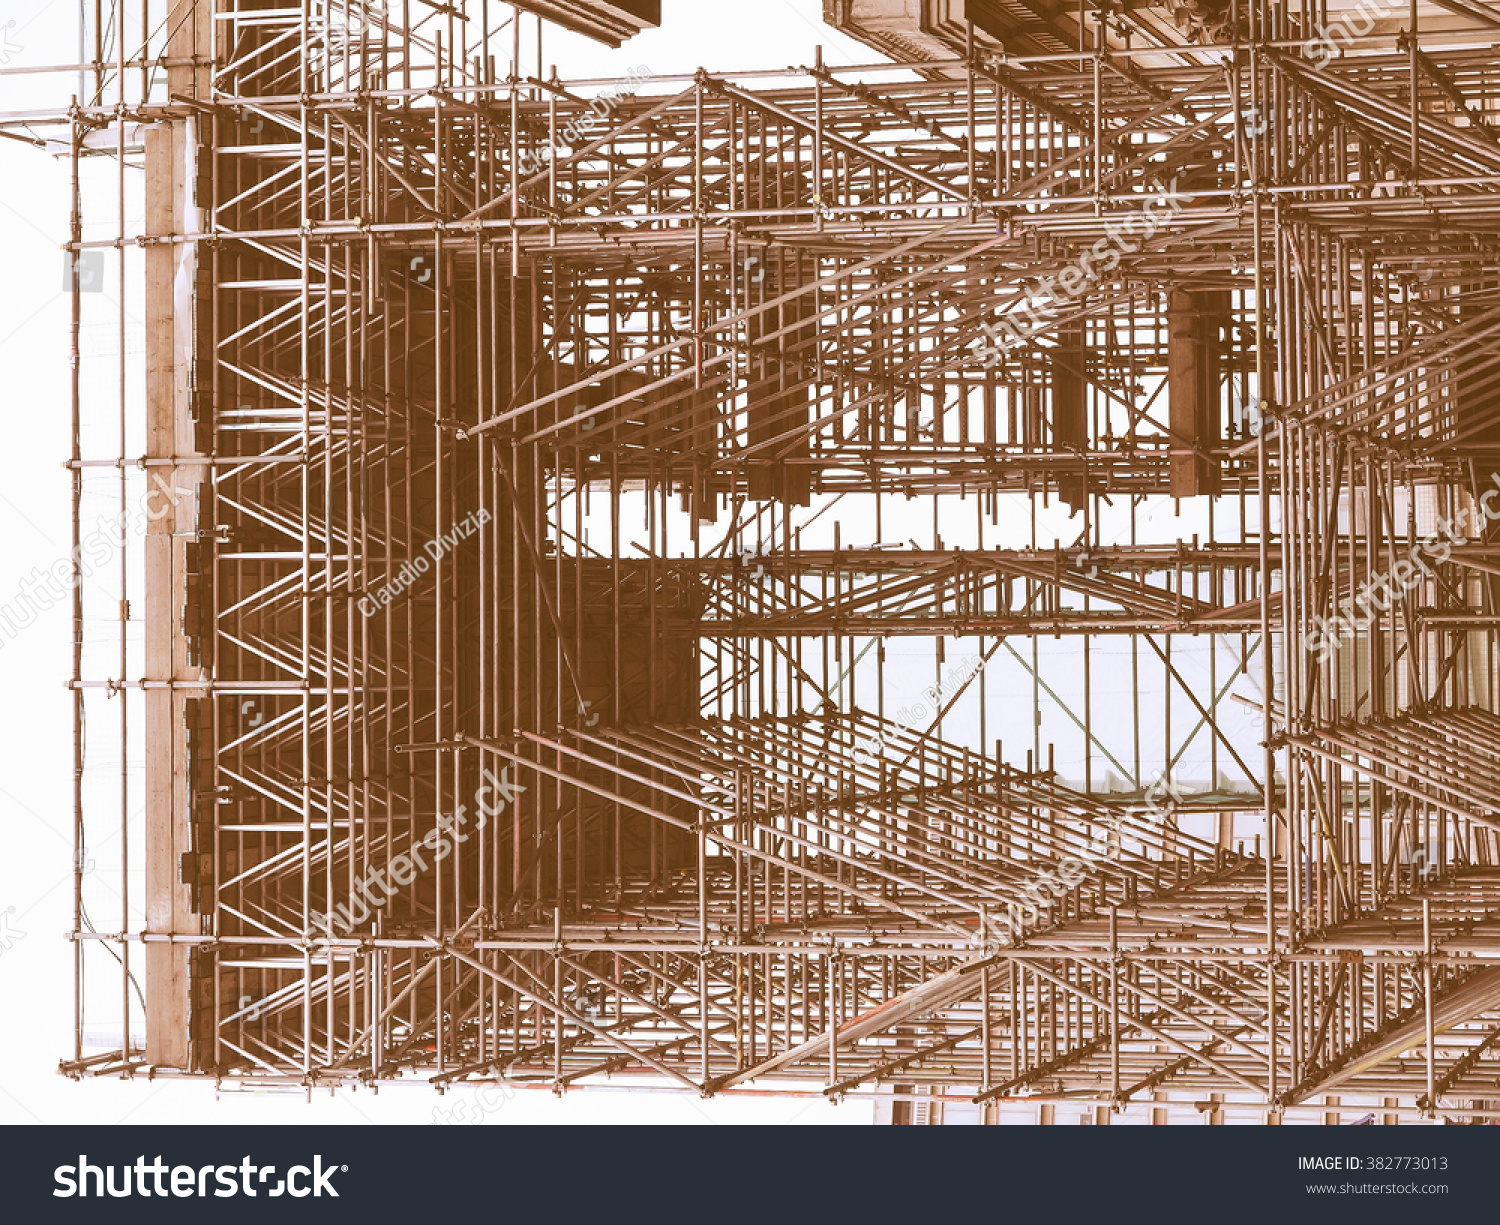 Metal products in construction works from the company SZTK Metallobaza 4 75